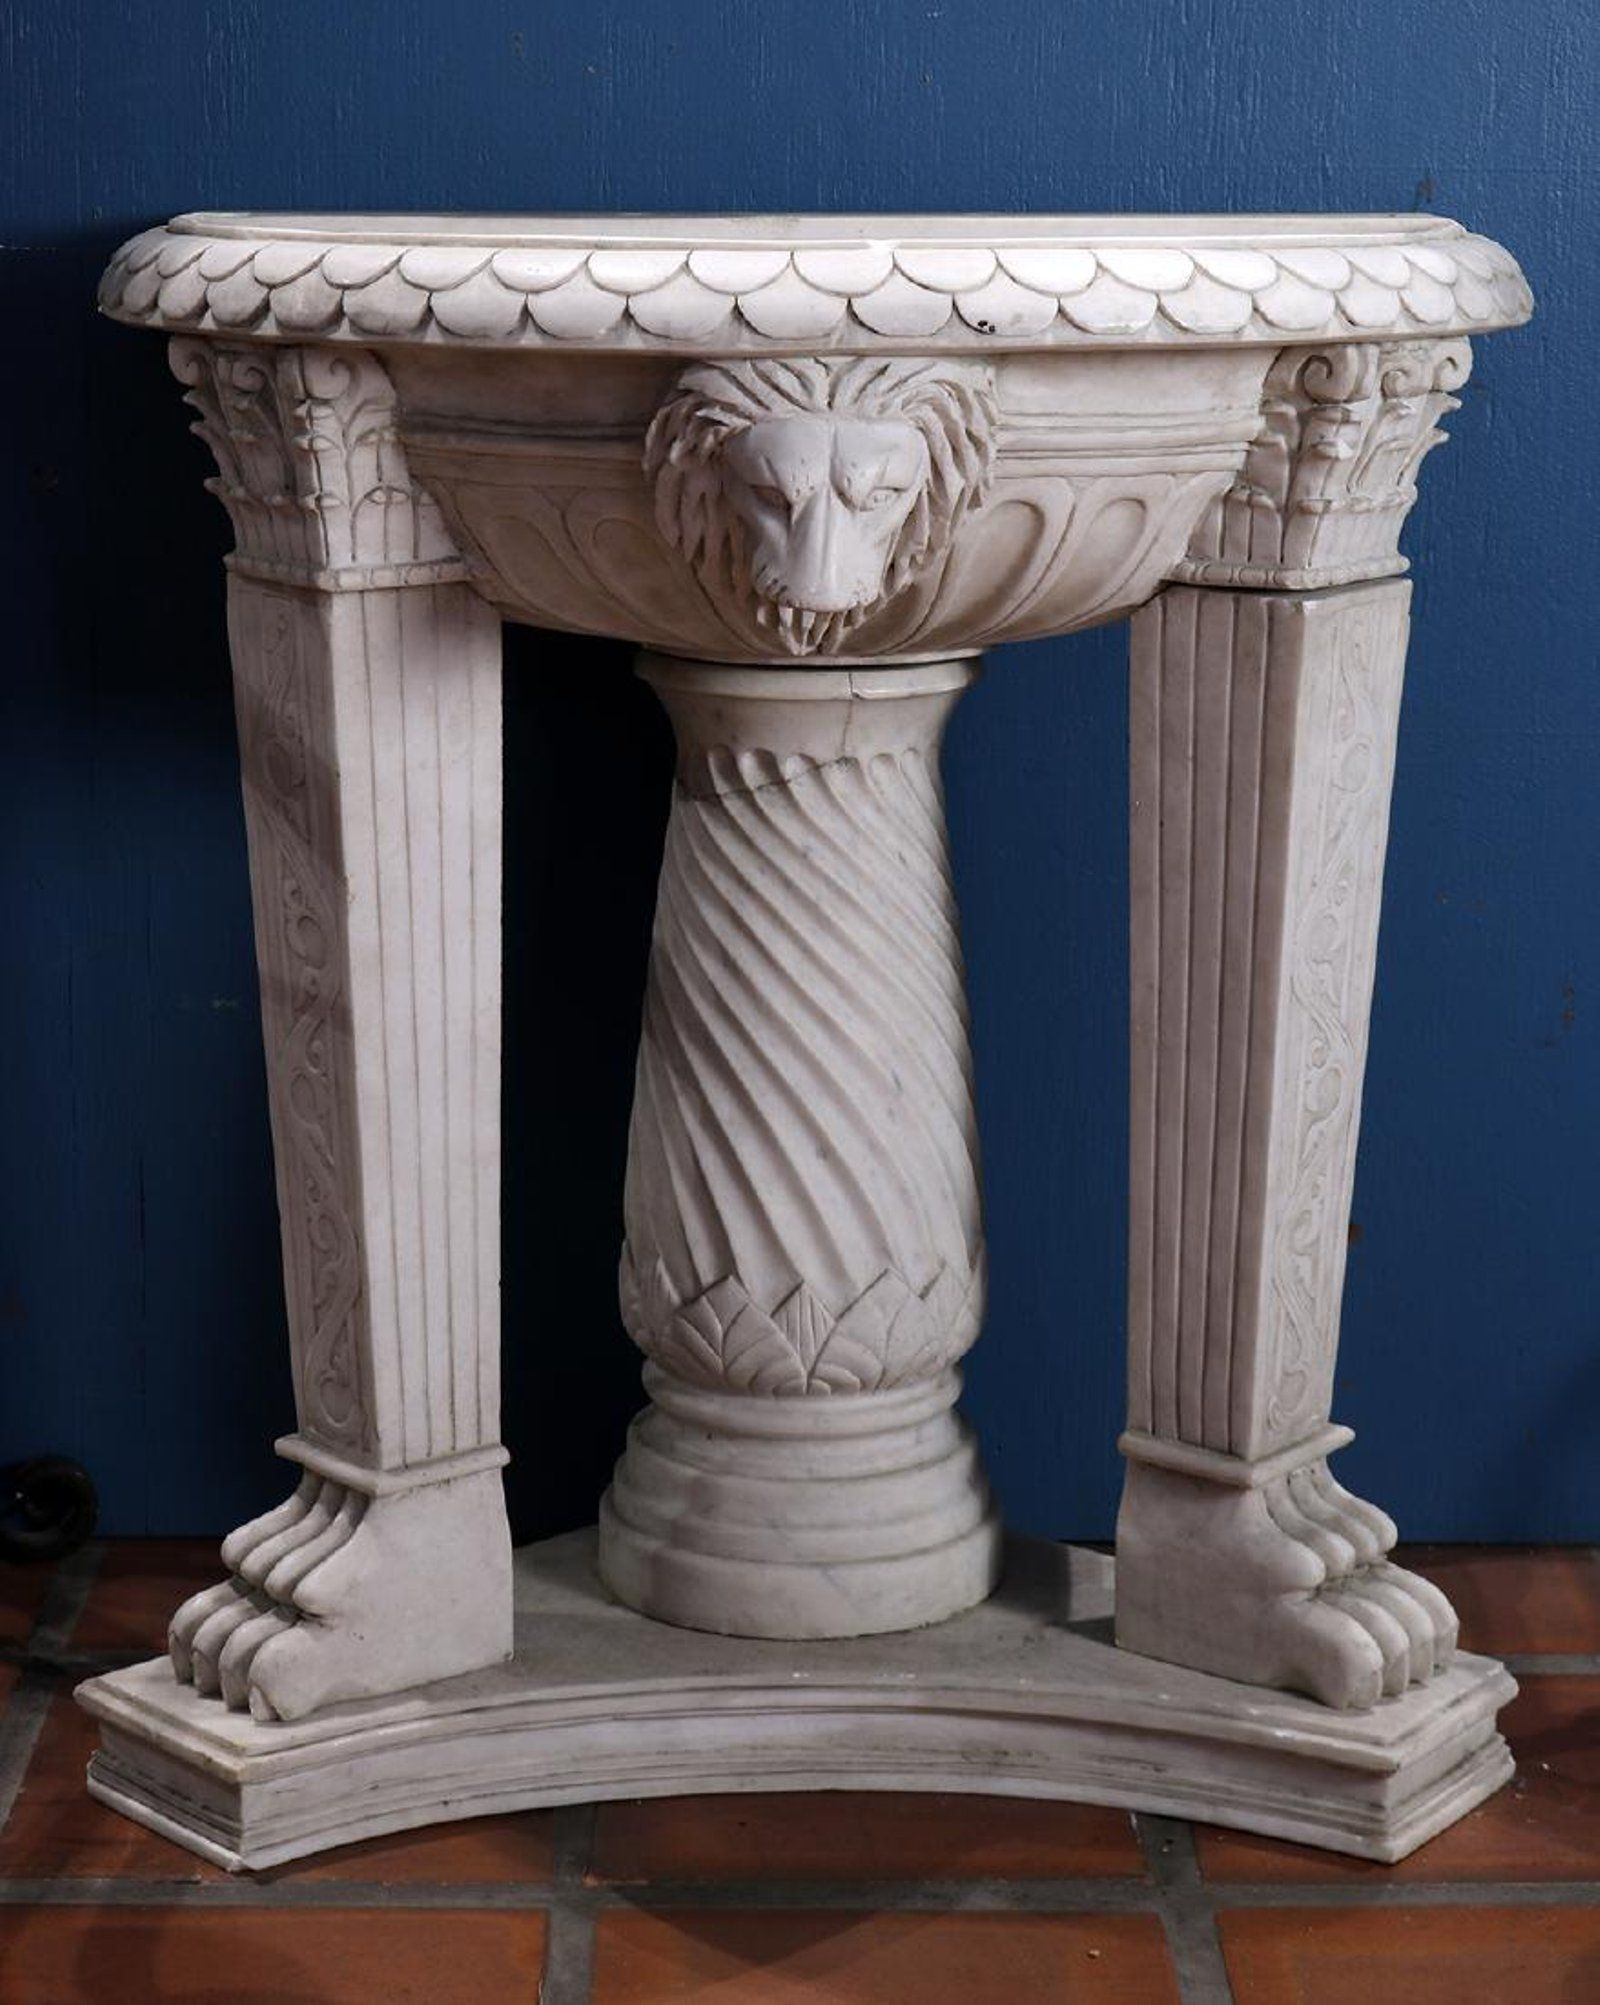 sea with furniture marble sink encore cast shell pedestal shells decorations gallery